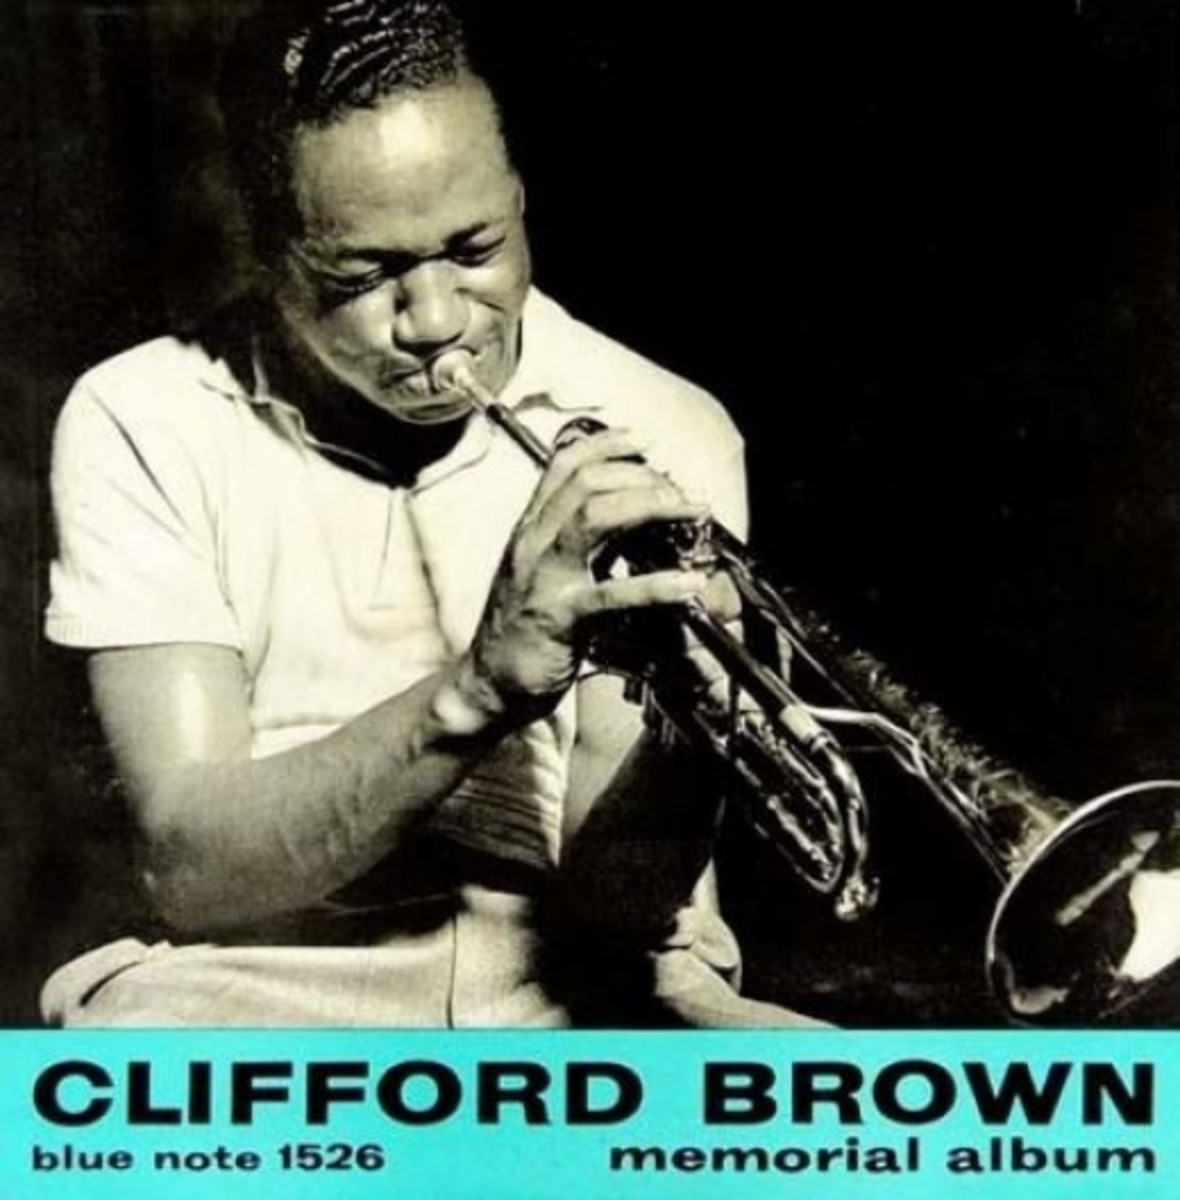 "Clifford Brown ""Memorial Album"" Blue Note Records BLP 1526 LP Vinyl Record (1956) Album Cover Design Reid Miles Photo by Francis Wolff"